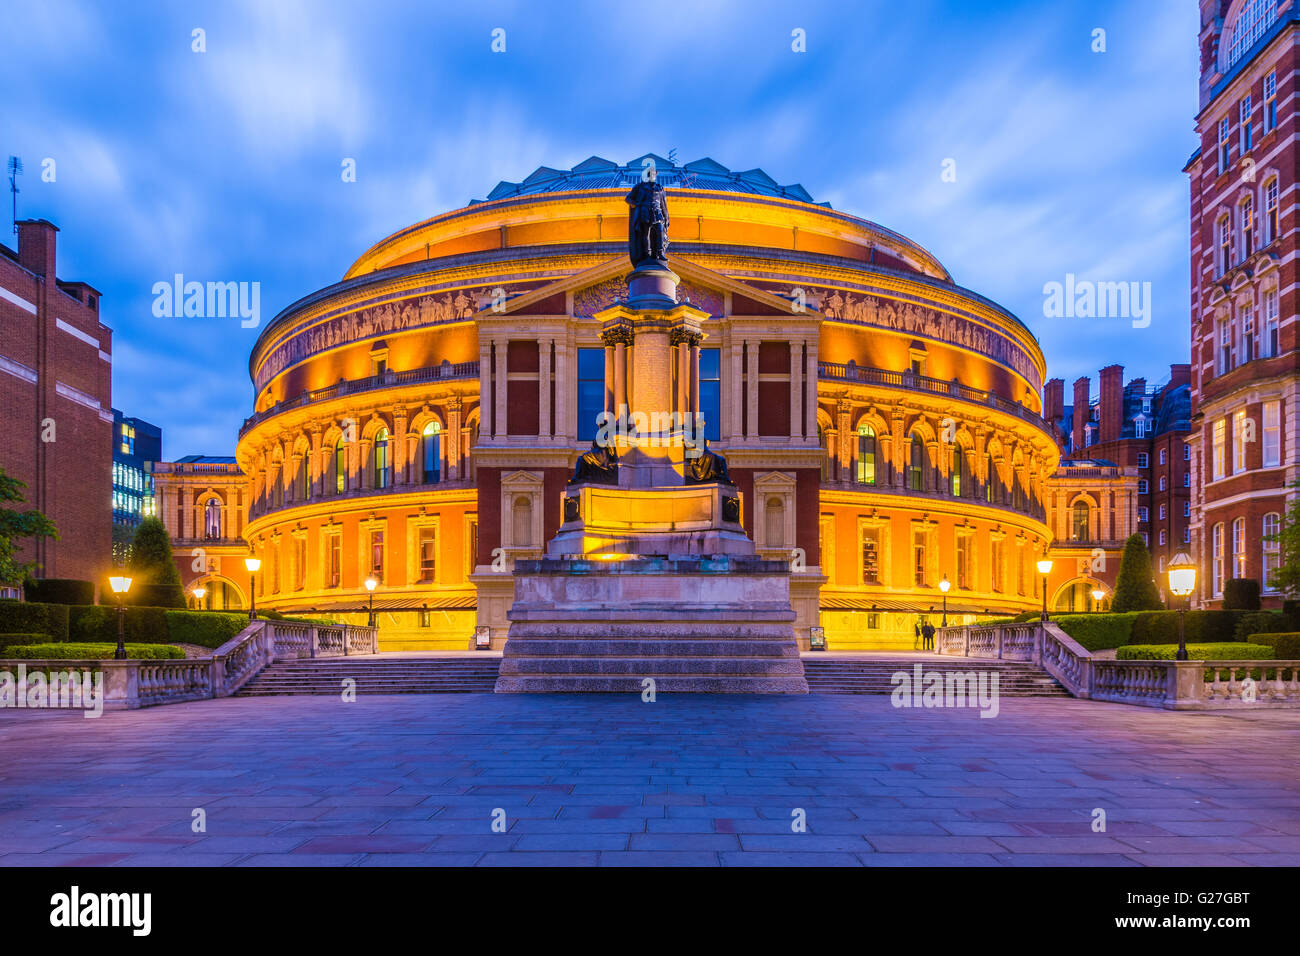 Allumé le Royal Albert Hall, Londres, Angleterre, Royaume-Uni de nuit Photo Stock